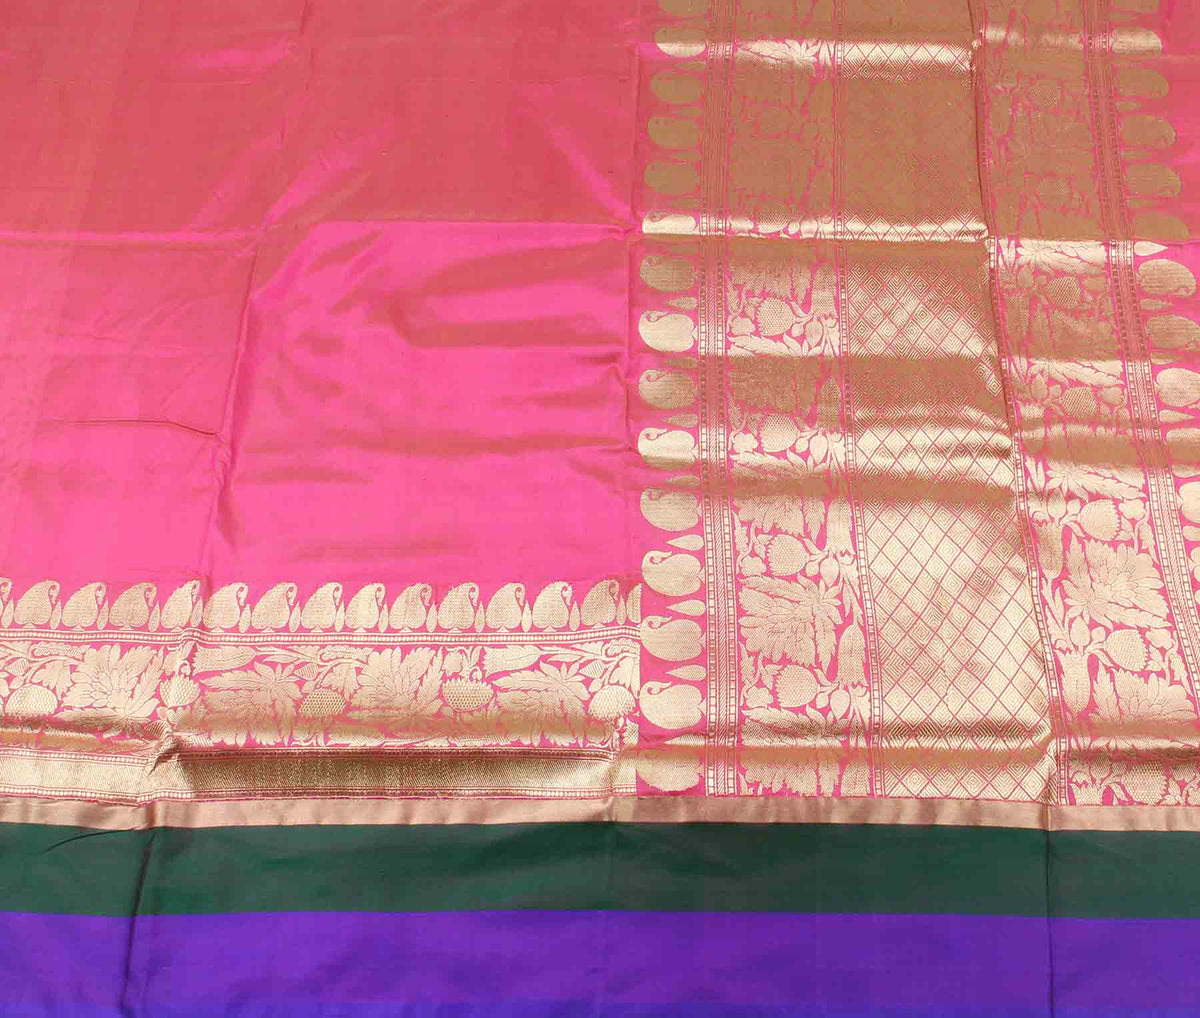 Pink Katan silk handwoven plain banarasi saree with paisley border (2) flat